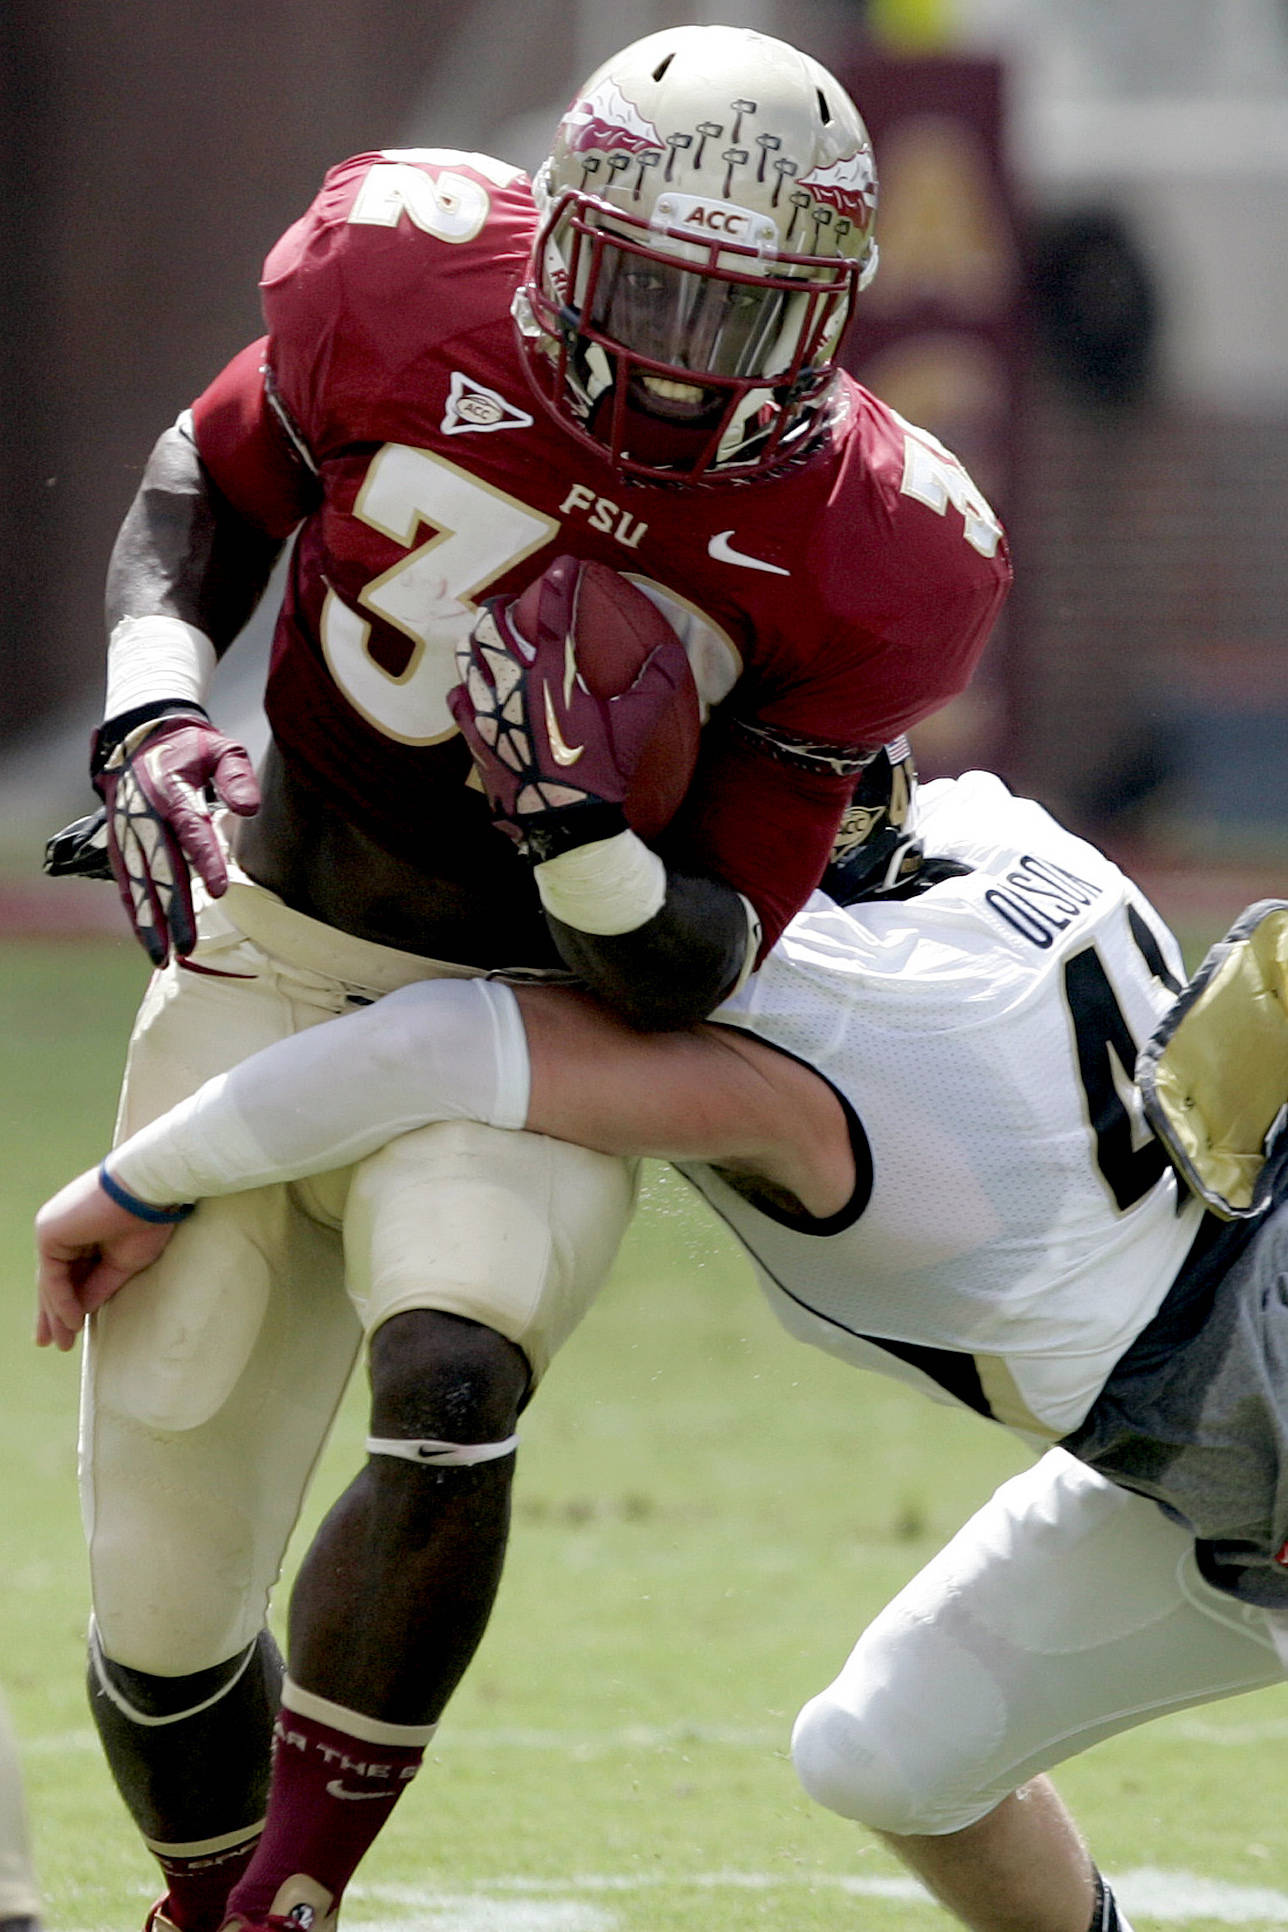 Florida State's James Wilder Jr. is tackled by Wake Forest's Mike Olson. (AP Photo/Steve Cannon)